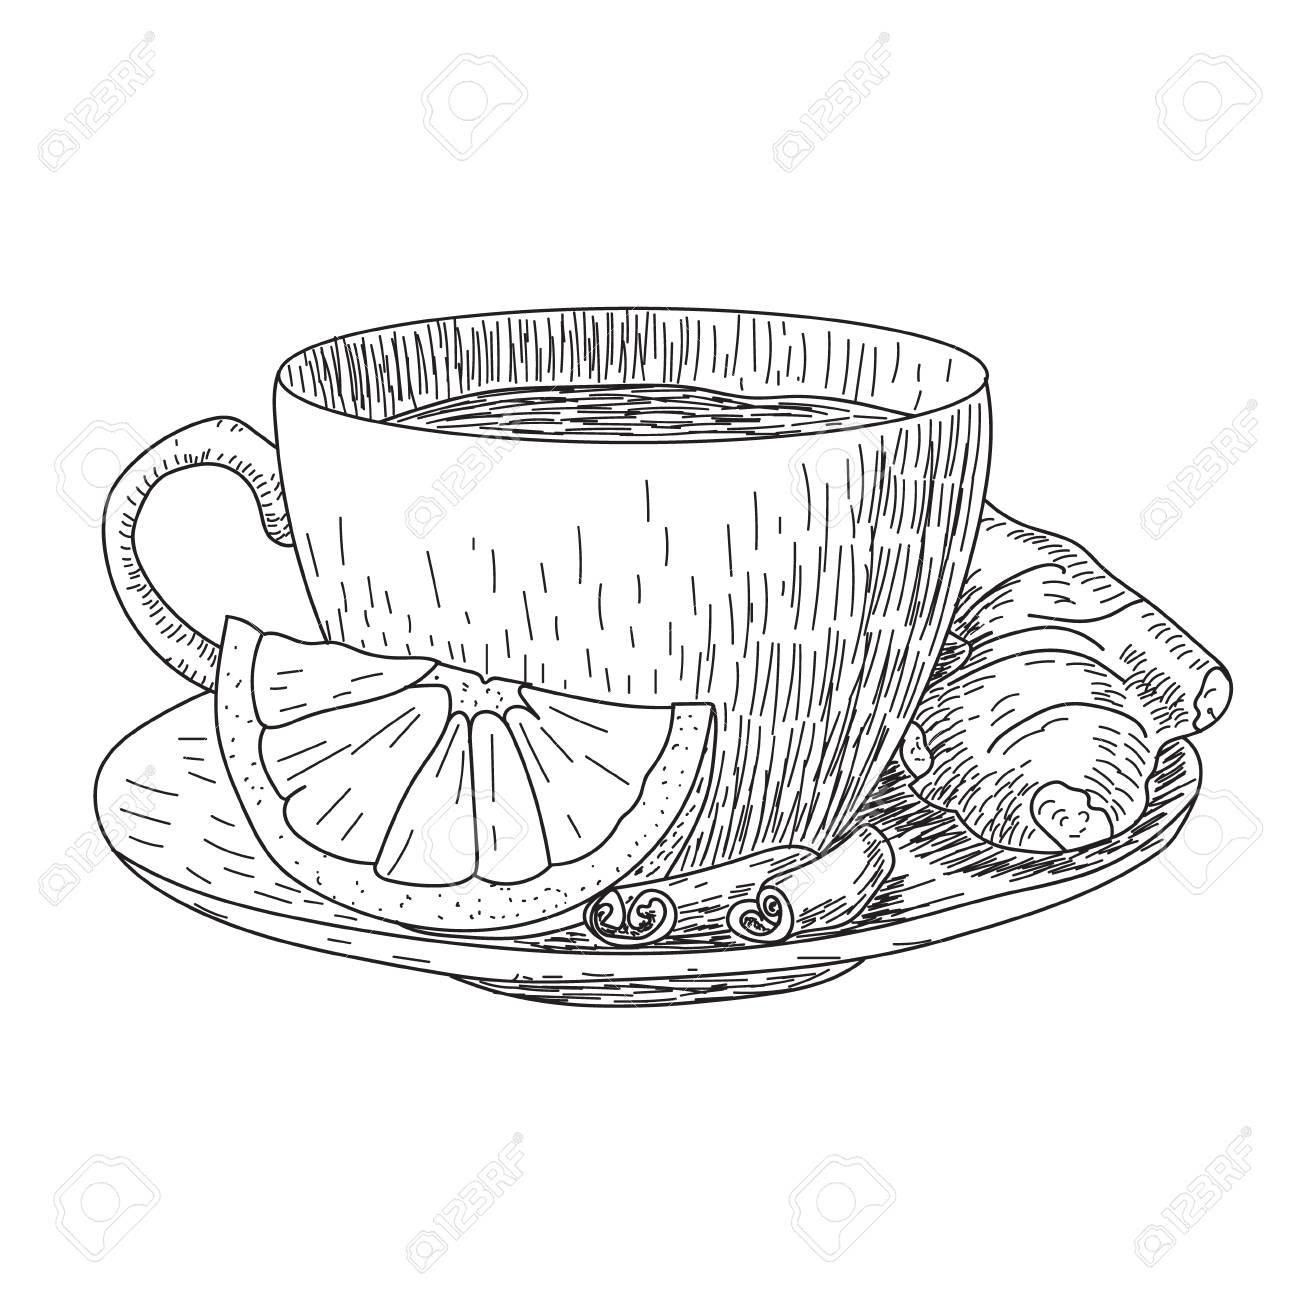 Sketch Of Hand Drawn Cup With Lemon And Ginger Mug Of Hot Drink Stock Photo Picture And Royalty Free Image Image 74604552